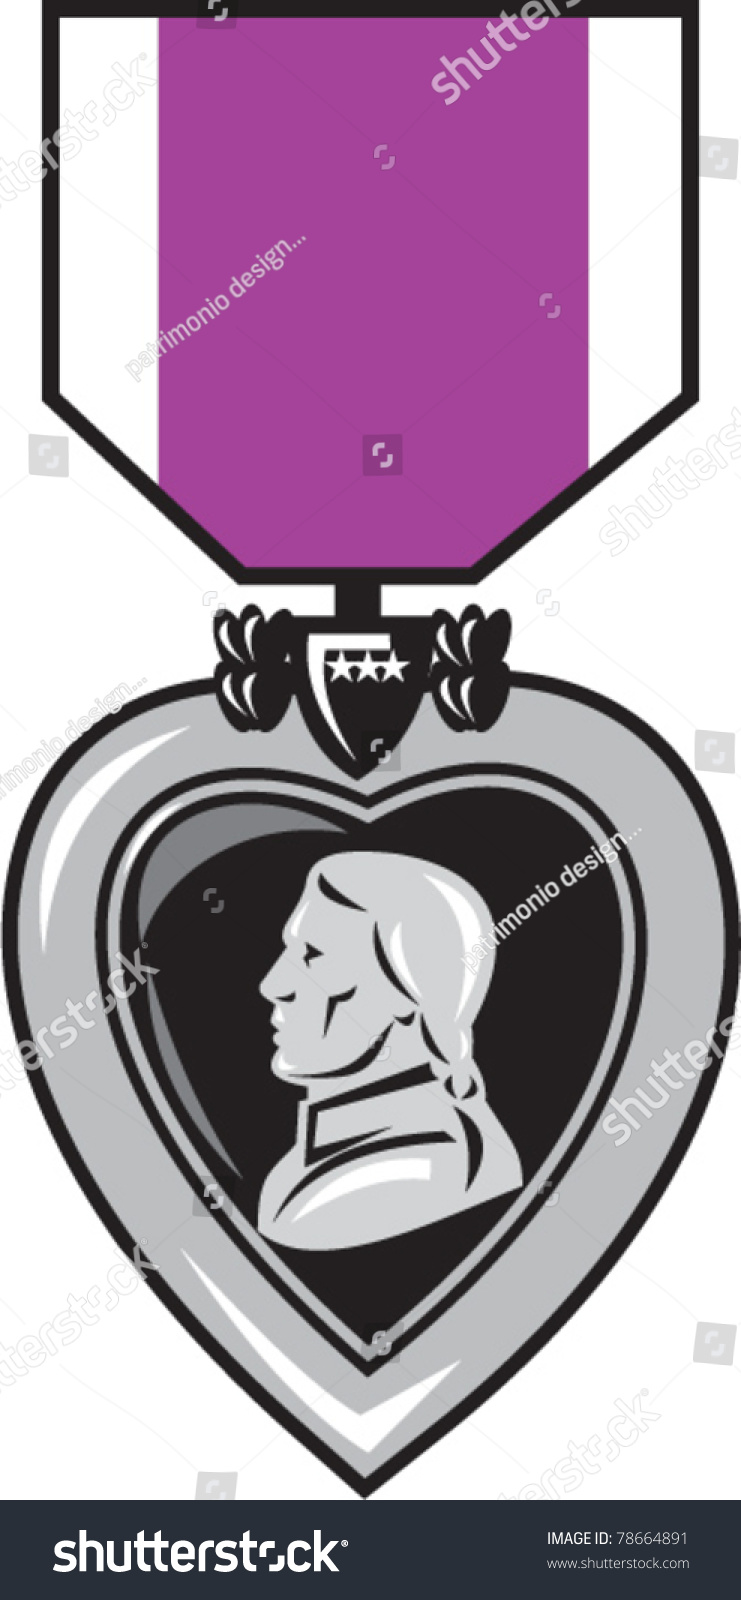 Illustration Of A Military Medal Of Bravery, Honor And ...